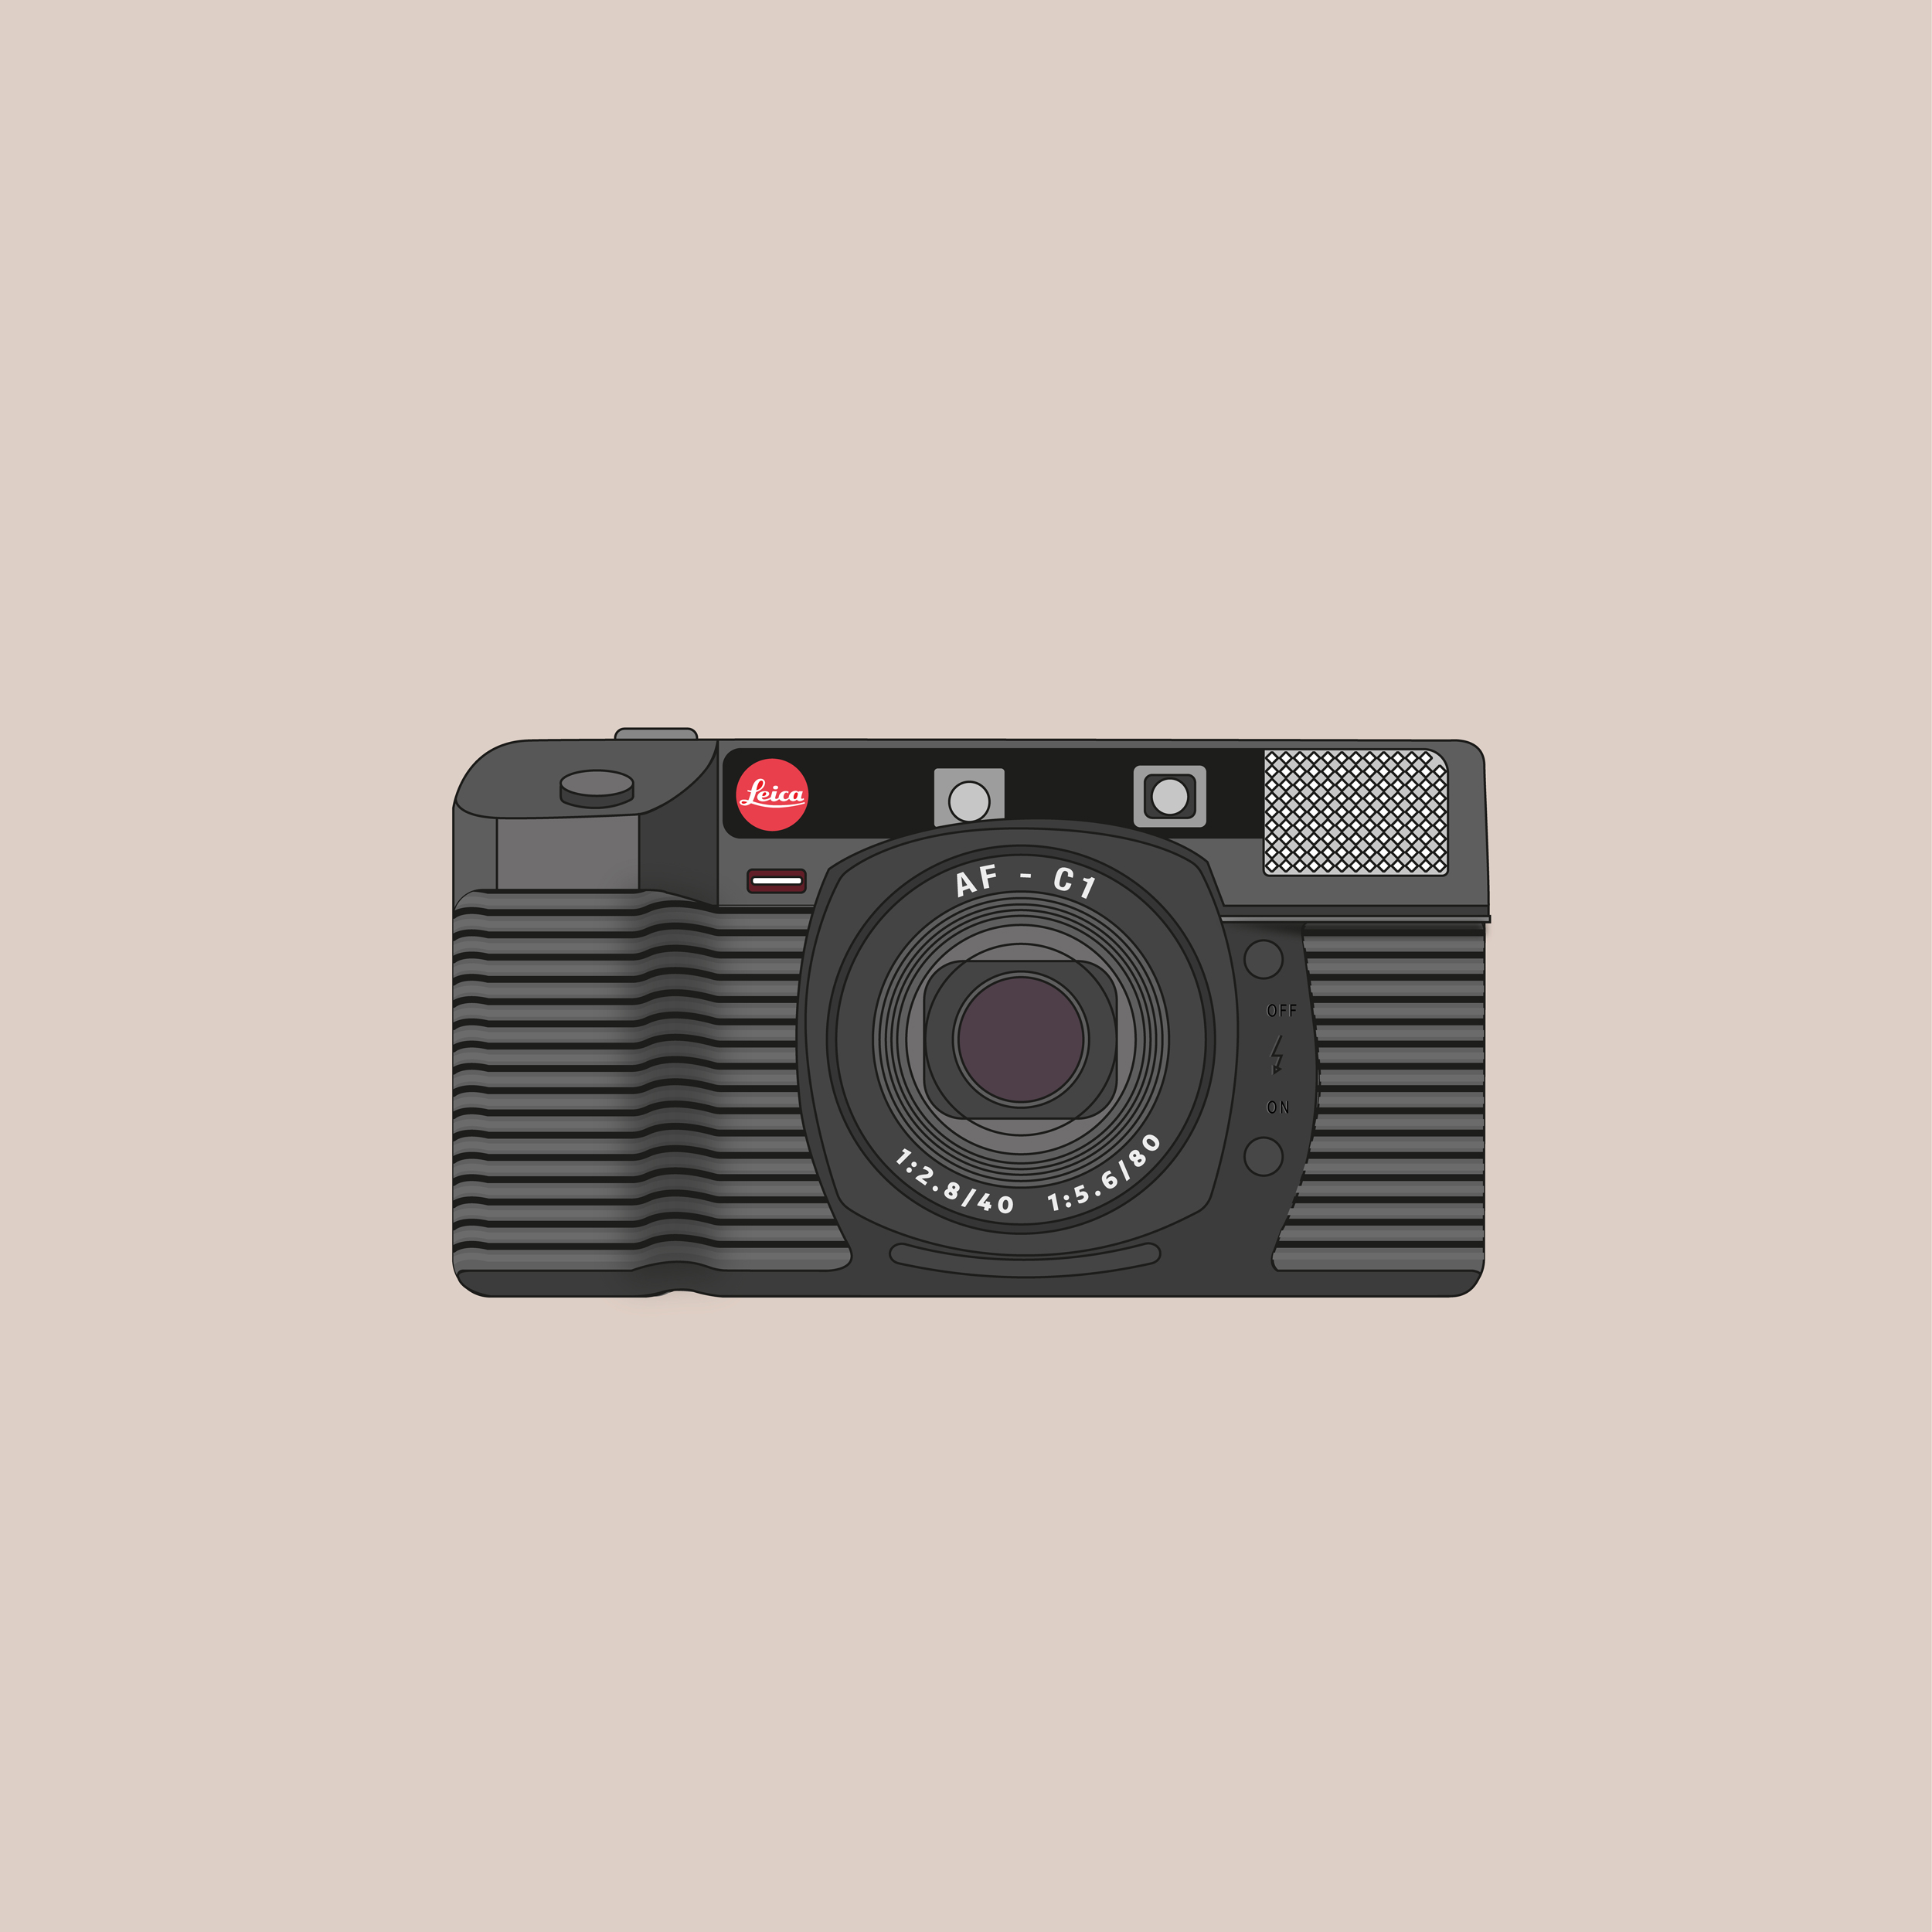 Leica AF-C1 (Graphic: David Ortiz)